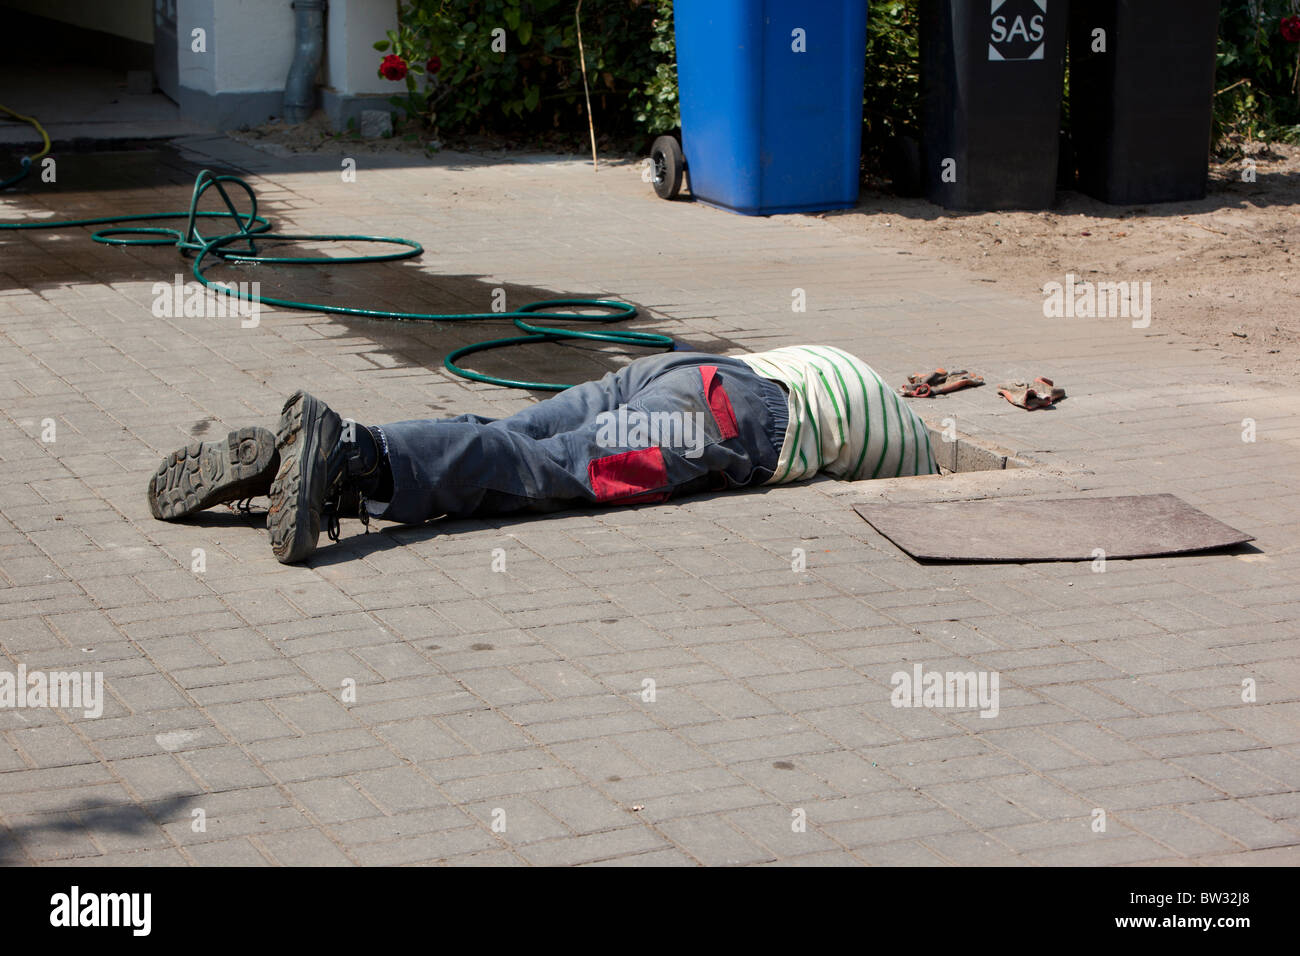 A man looks into a hole in the street - Stock Image